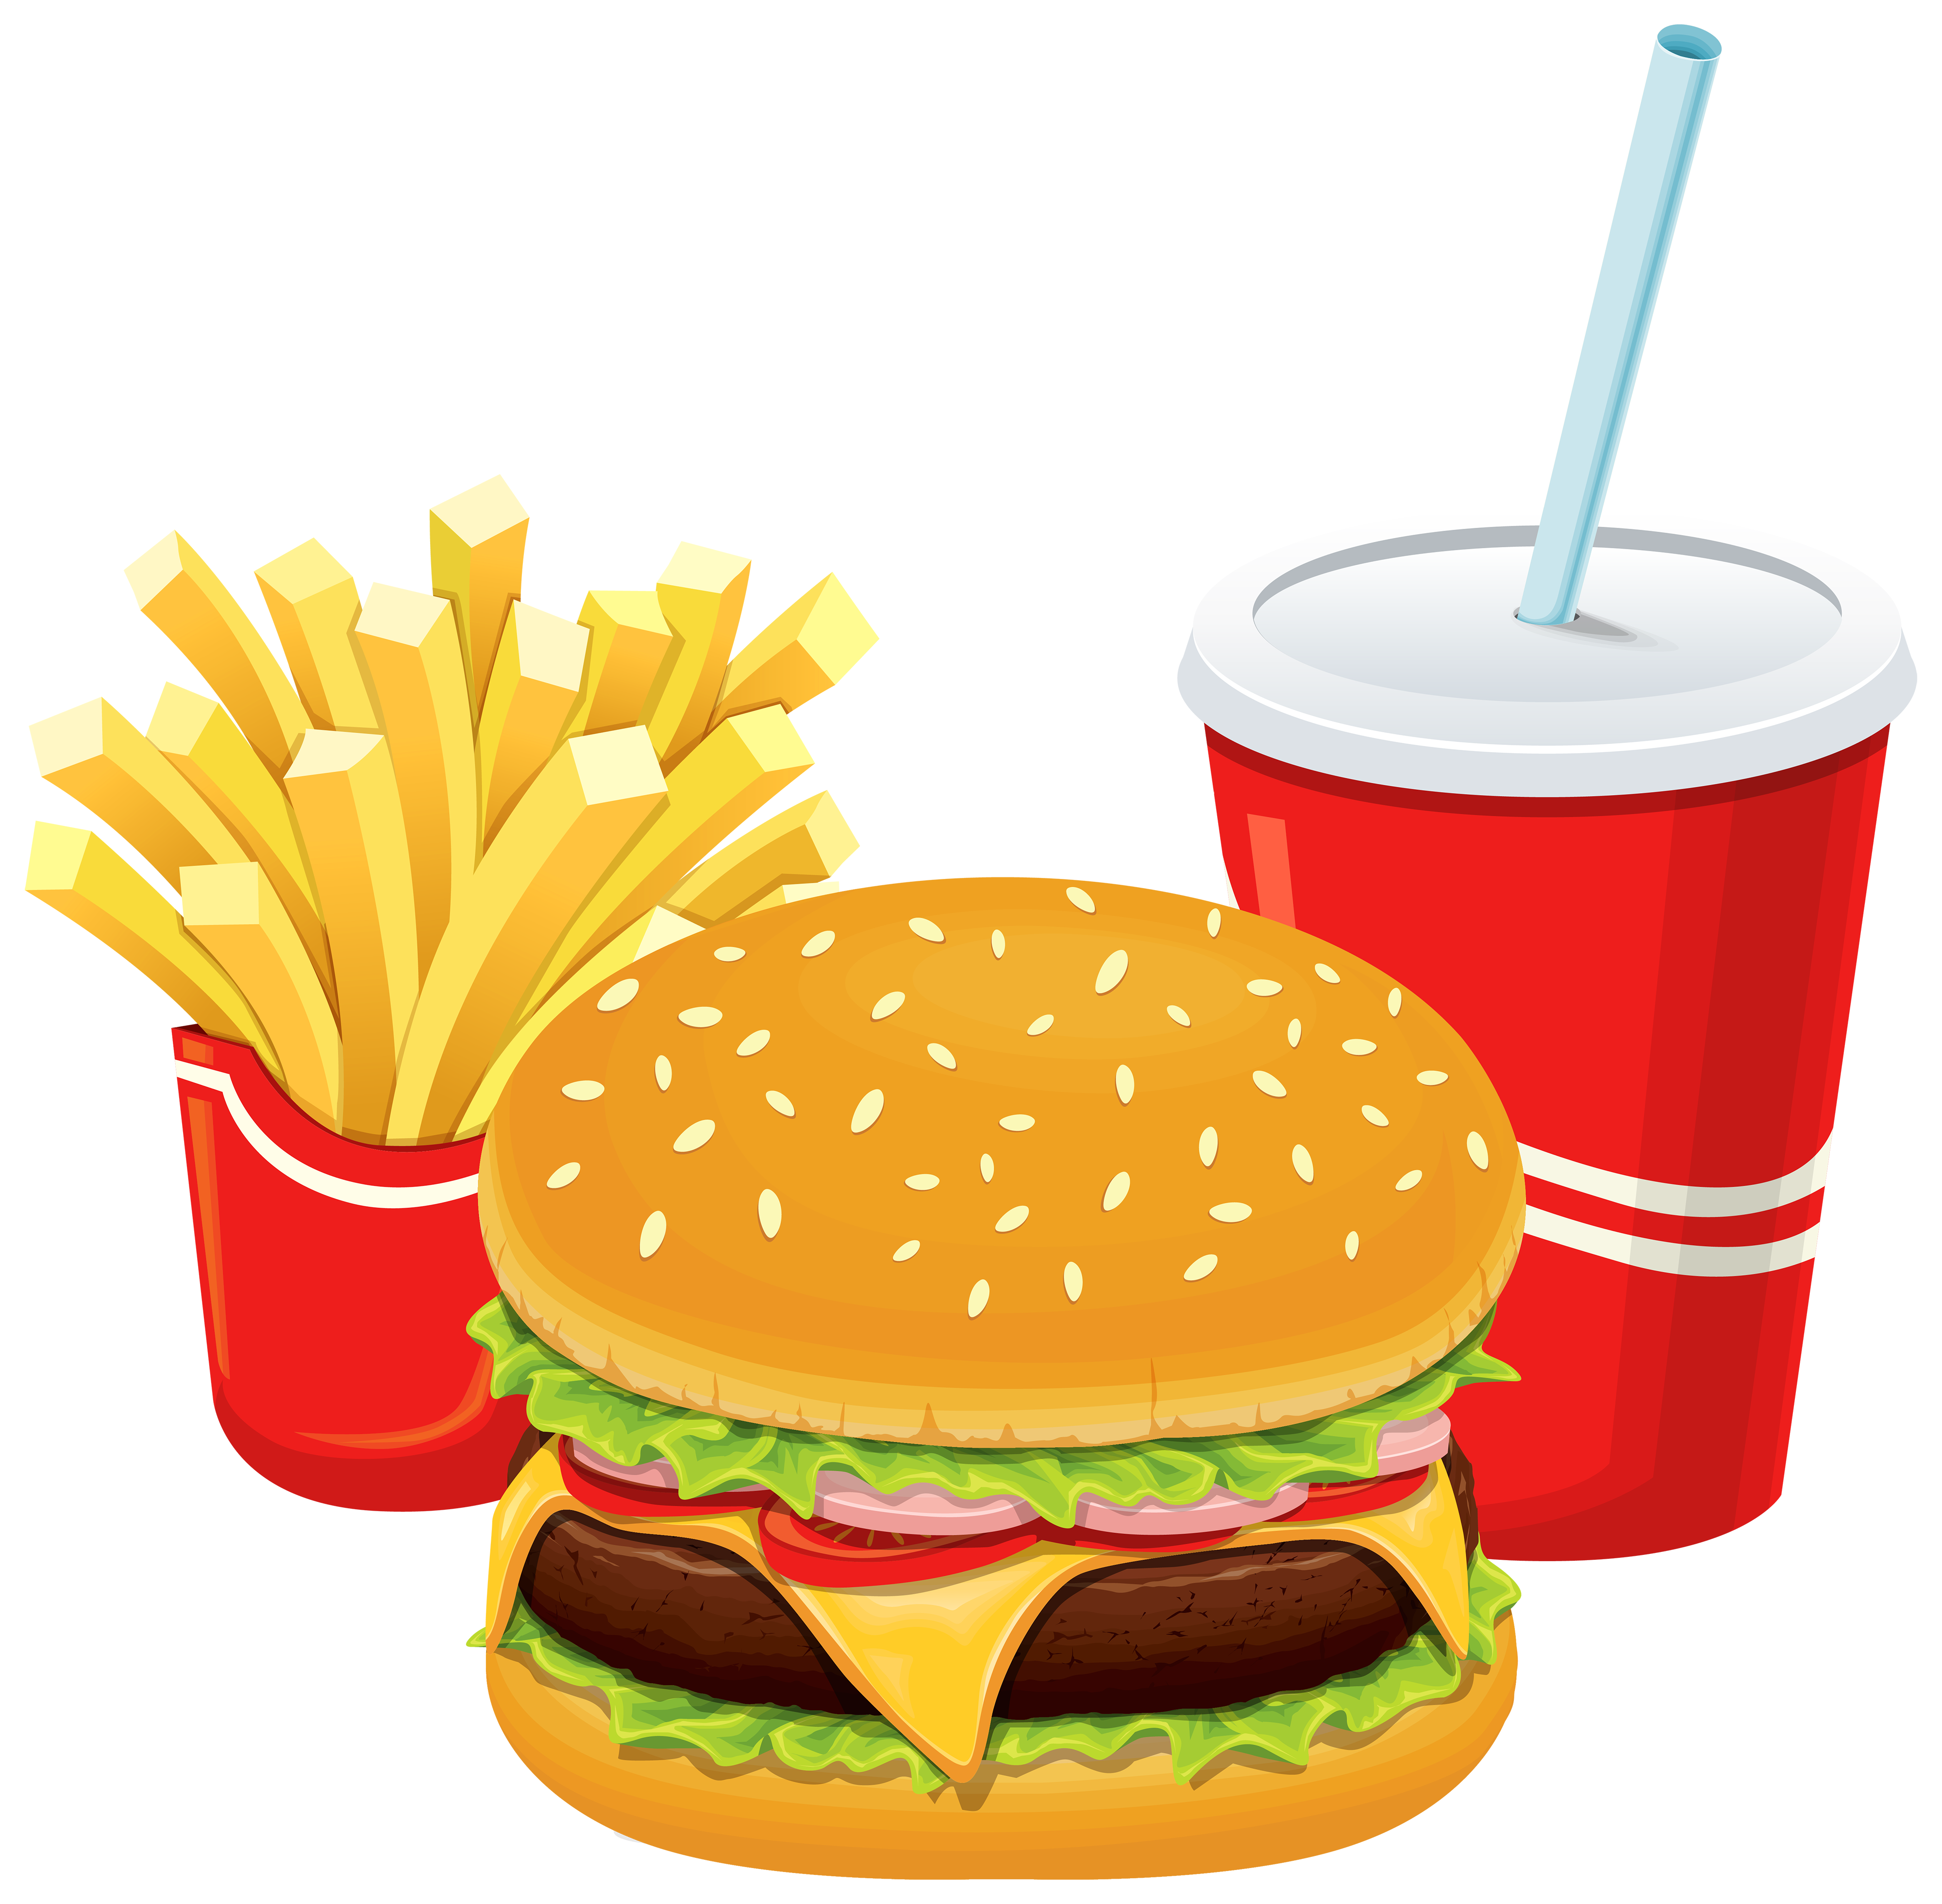 Hot dog and hamburger clipart picture transparent stock Hamburger Fries and Cola PNG Clipart - Best WEB Clipart picture transparent stock